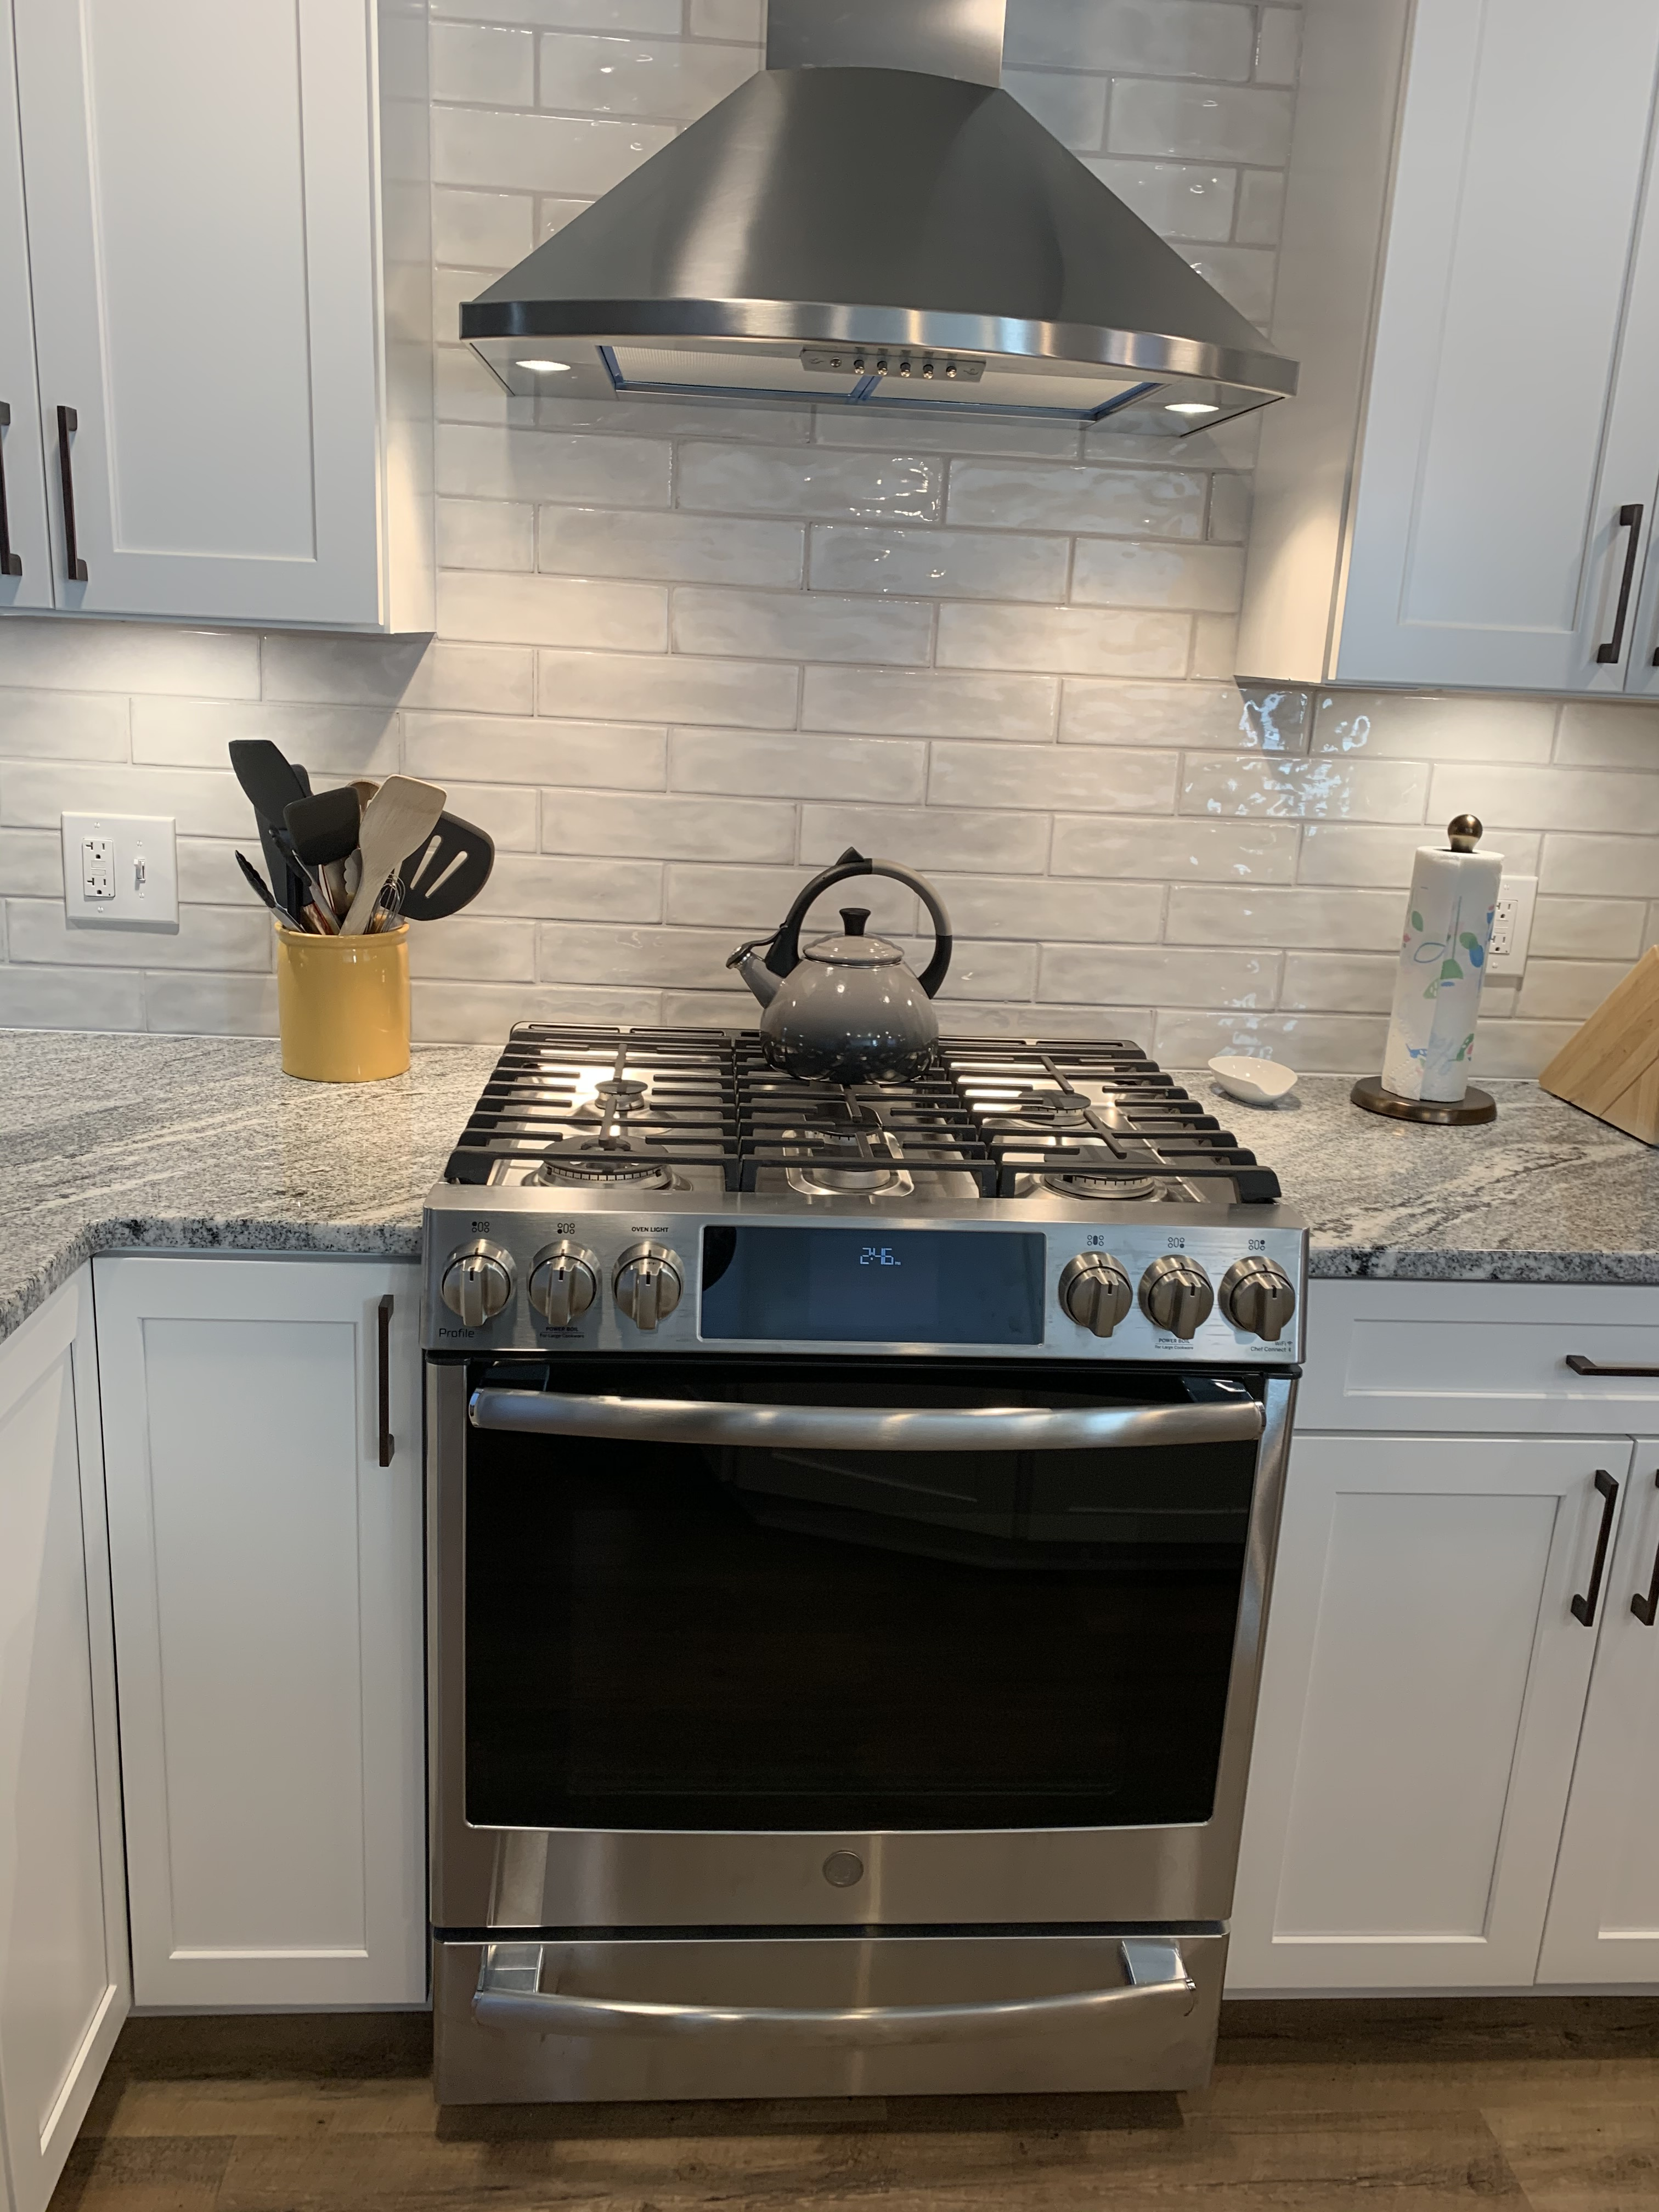 Backsplash and Stove